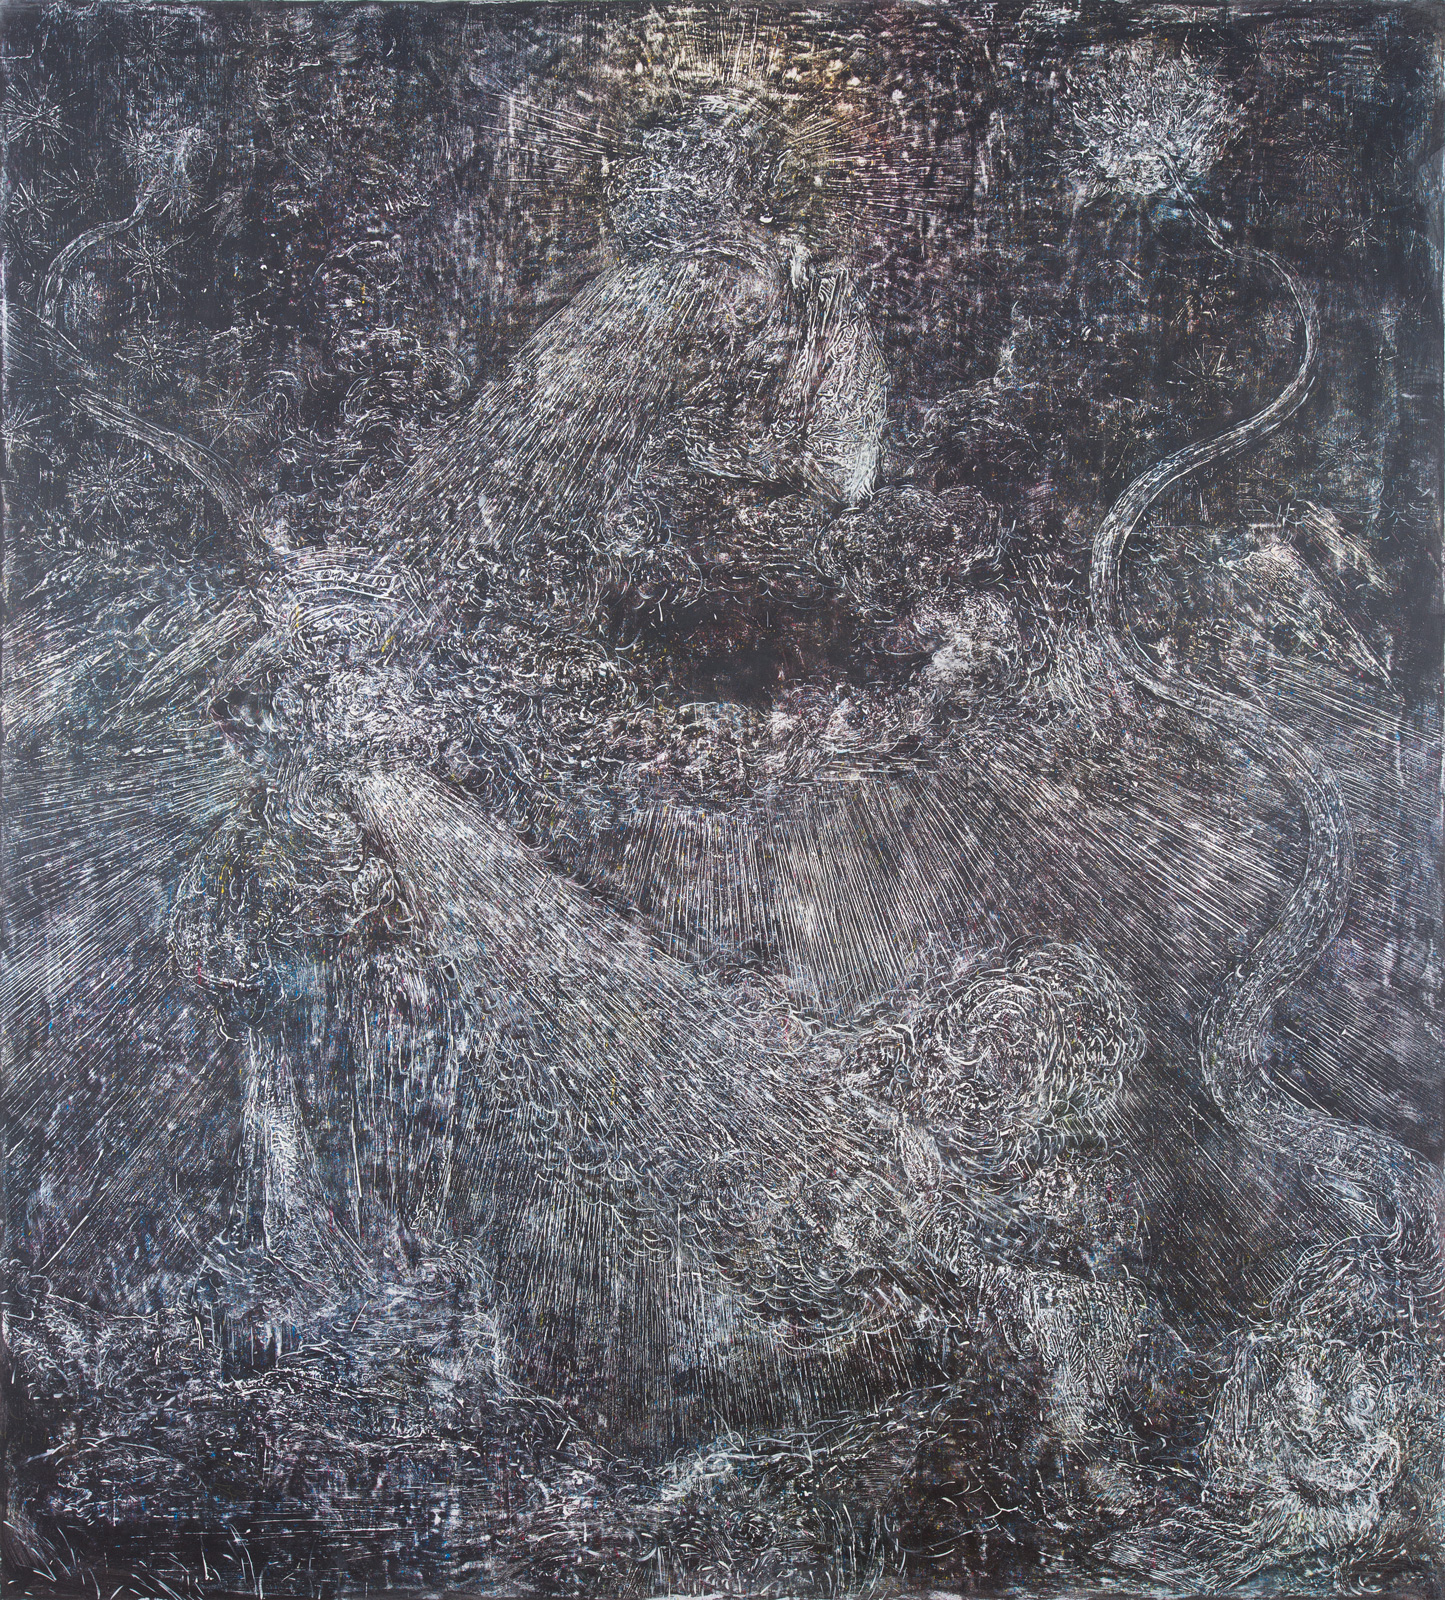 Marin Majić 2016 Acrylic Gesso, Pigmented Spray Paint, Oil, Pigmented Color Pencils on Linen 94.49 x 86.61 inches 240 x 220 cm 2016 Marc Straus Gallery